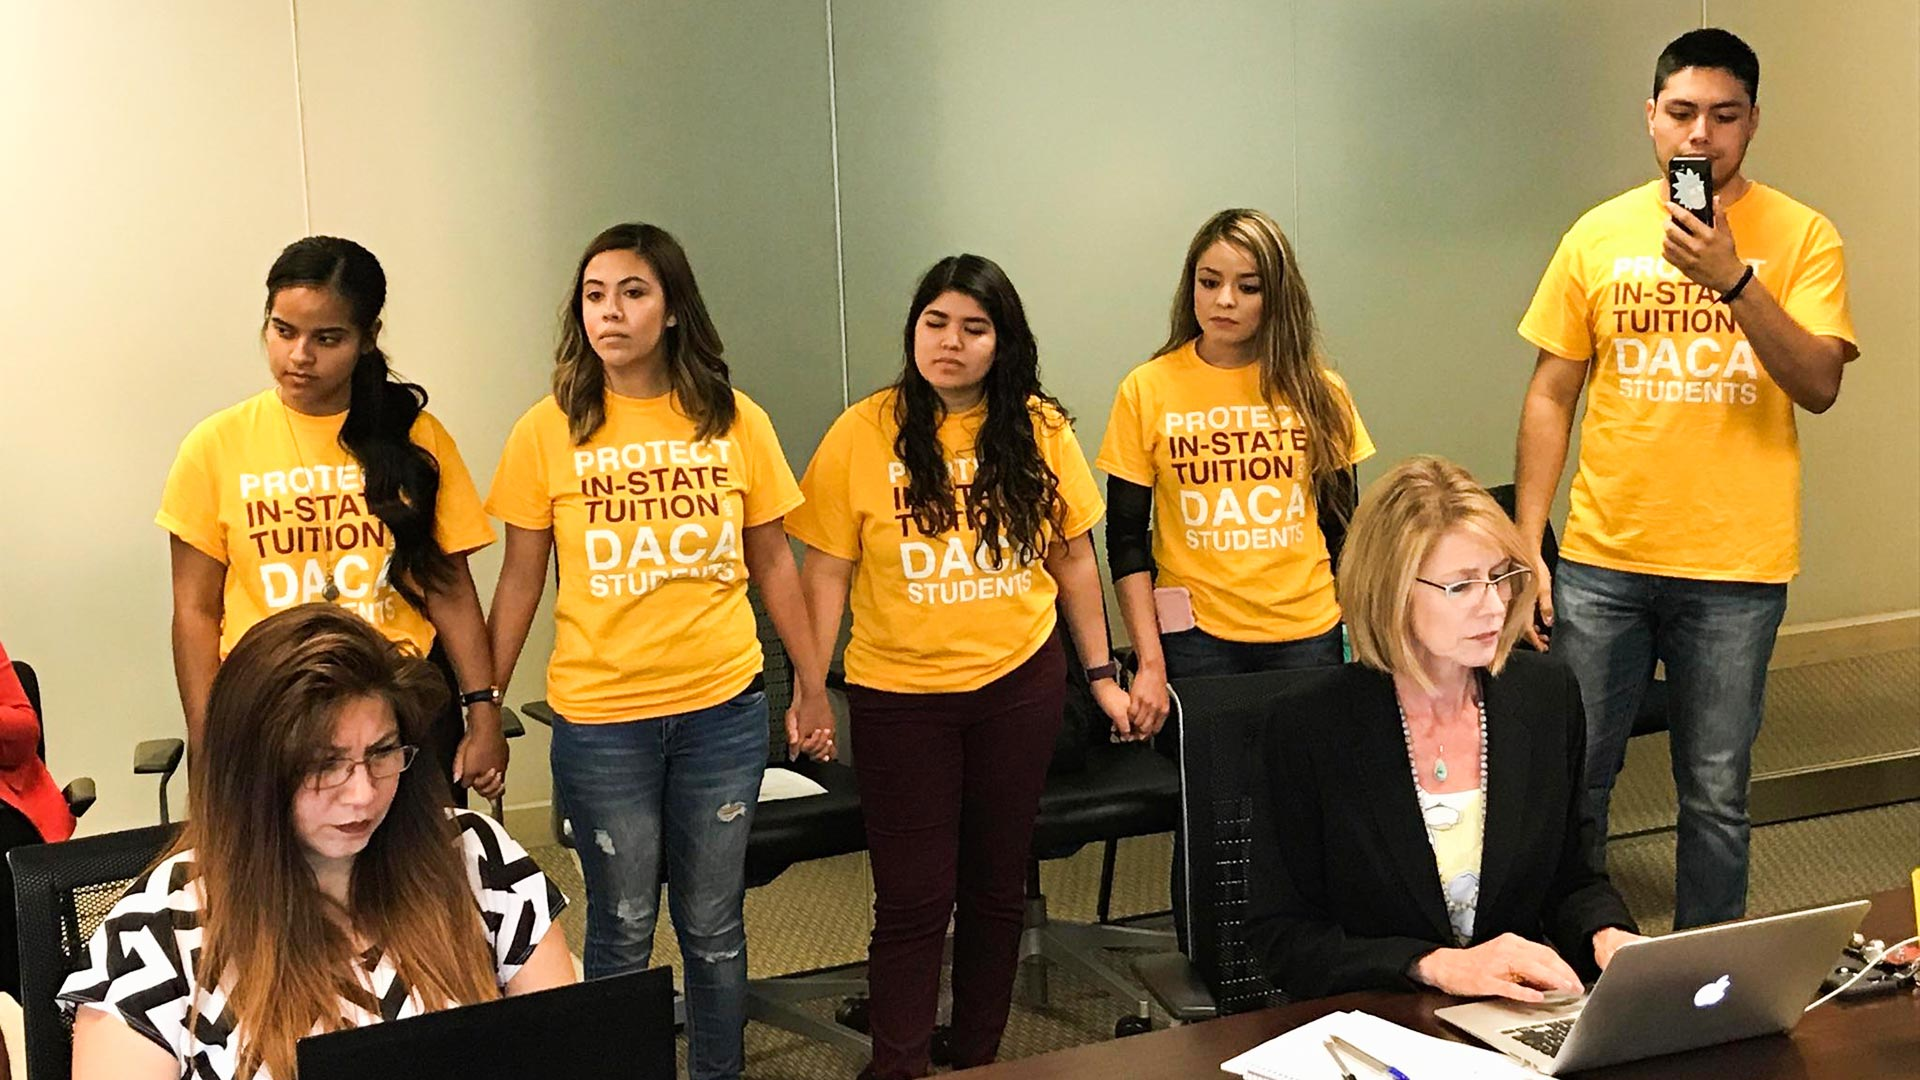 A group stands in support of in-state tuition eligibility for Arizona students with DACA status at a June 29, 2017, Arizona Board of Regents meeting.